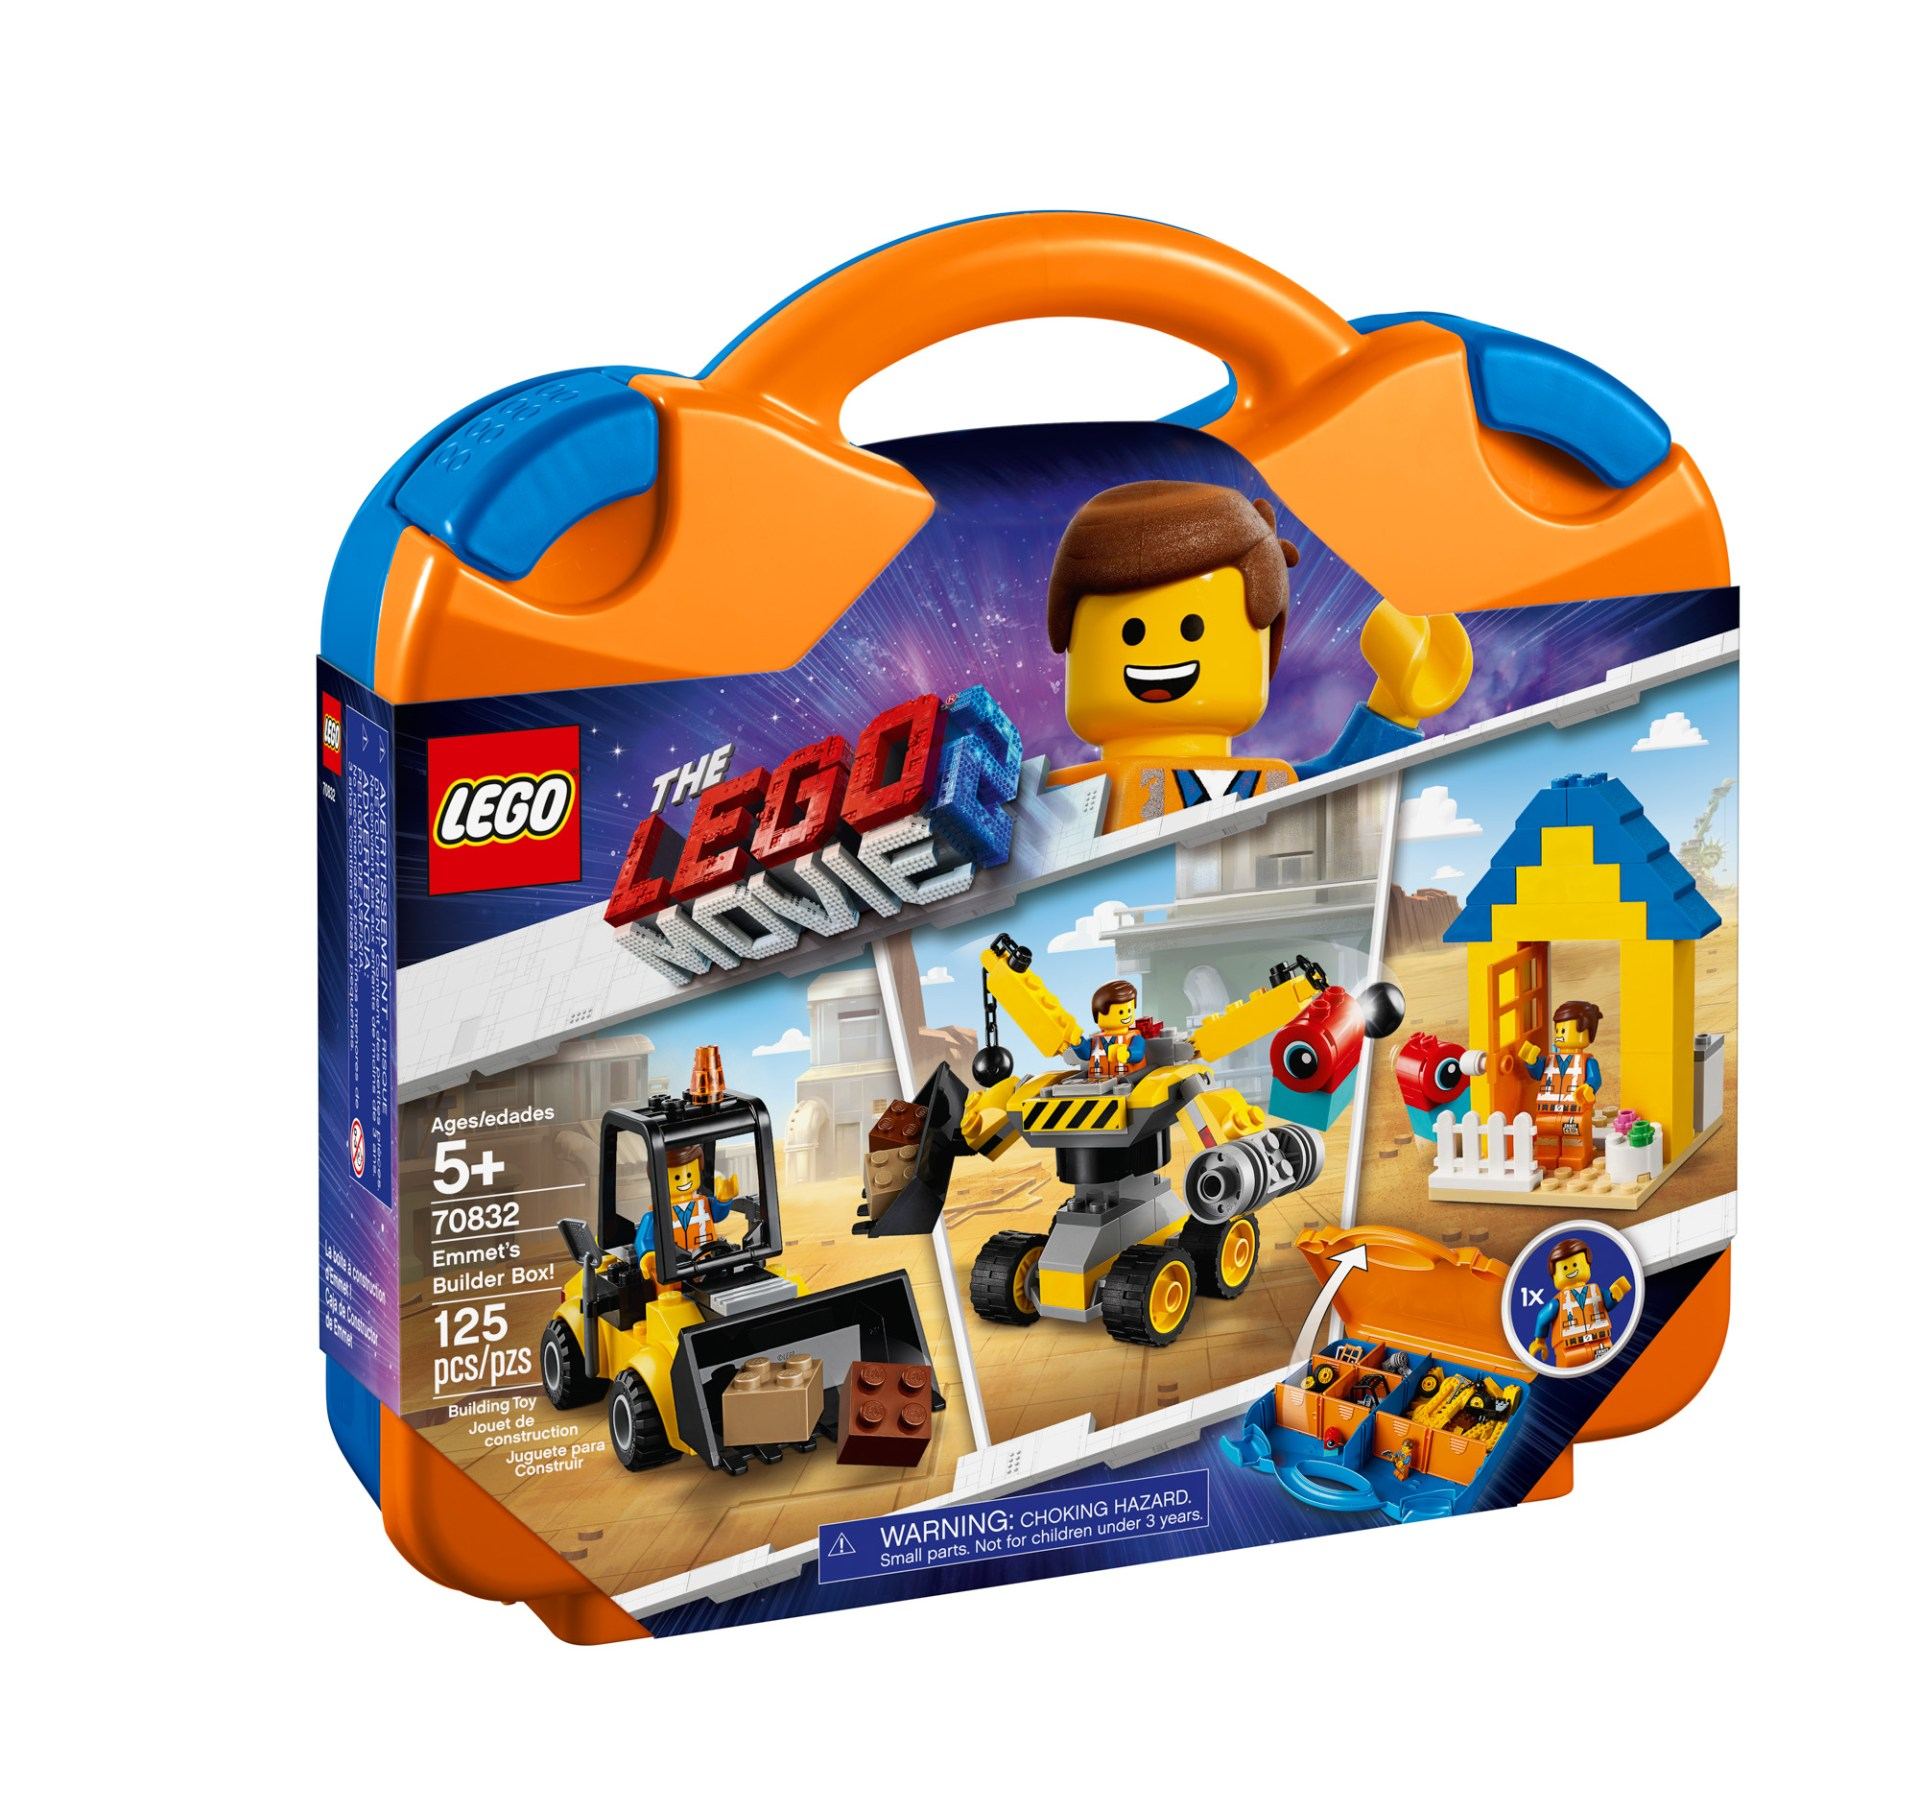 70832 — Emmet's Builder Box